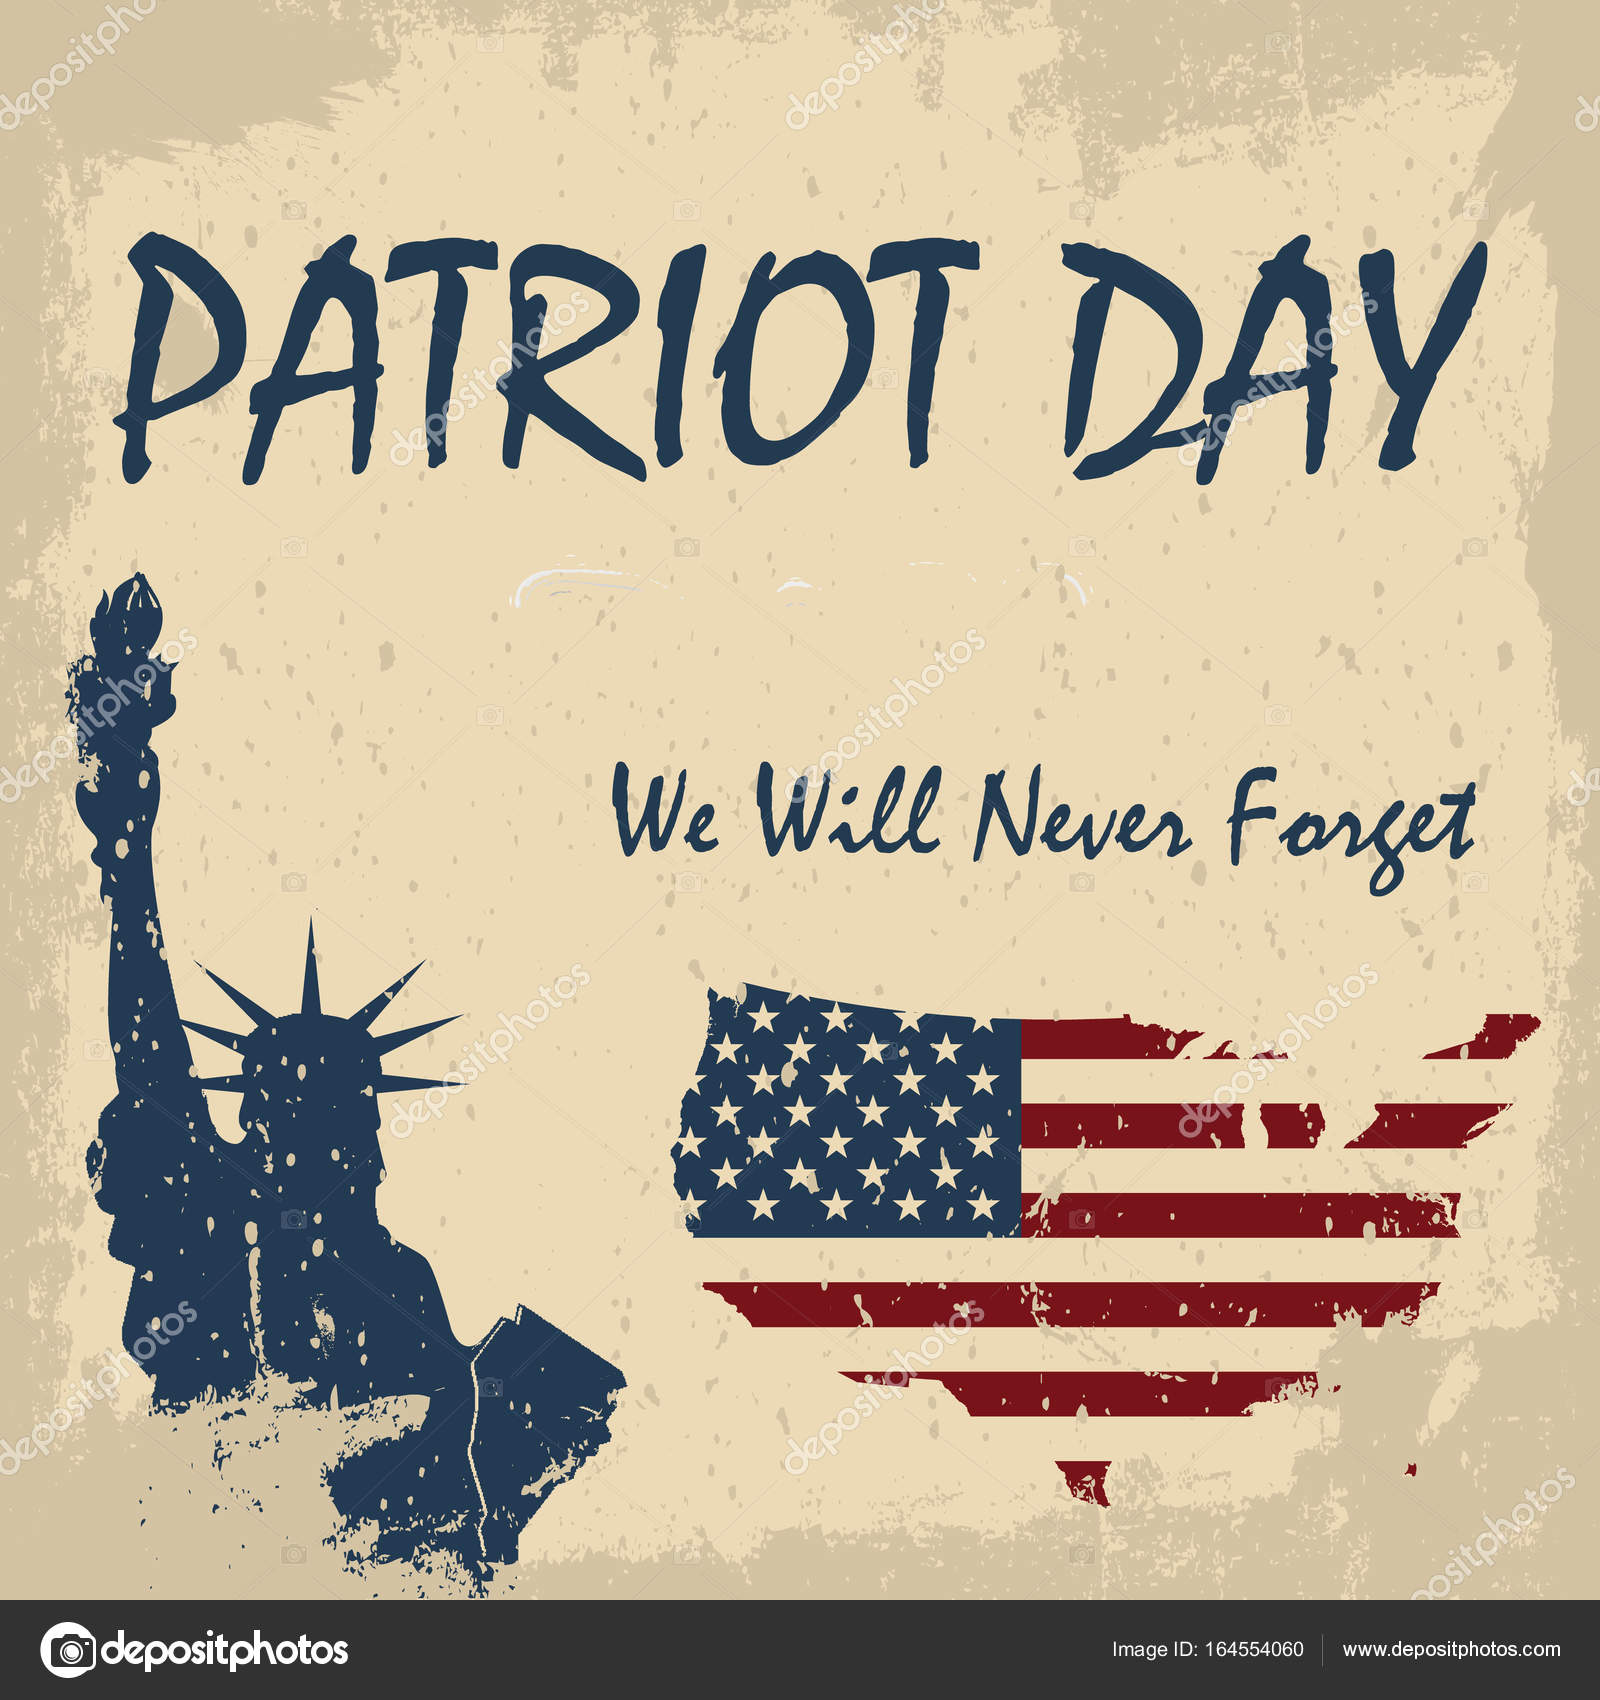 We Will Never Forget 9 11 Patriot Day Background